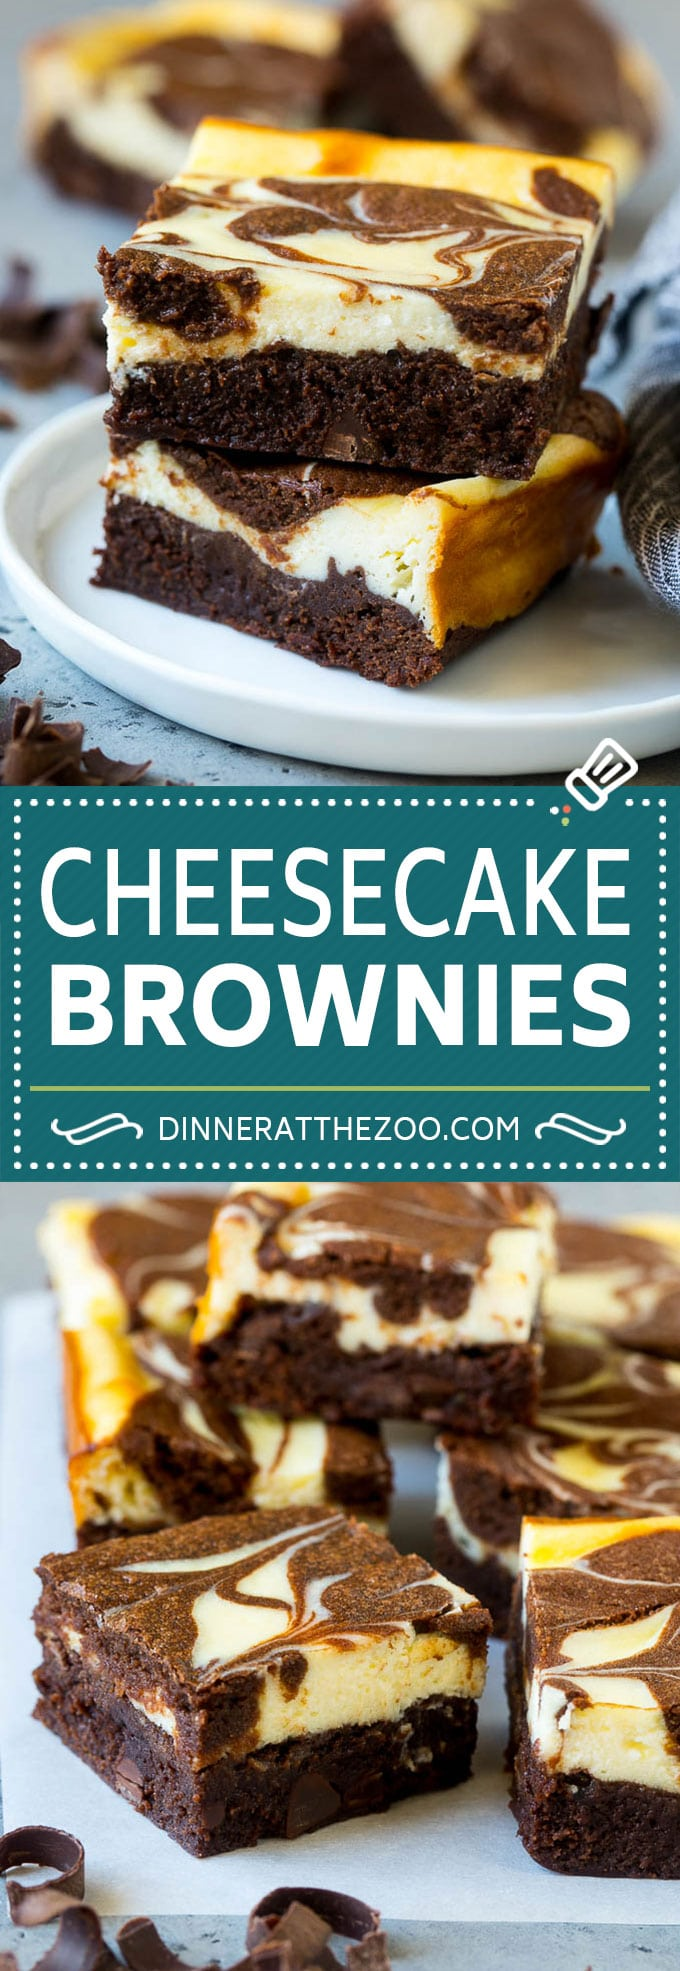 Cheesecake Brownies Recipe | Cream Cheese Brownies | Homemade Brownies #brownies #cheesecake #chocolate #dessert #dinneratthezoo